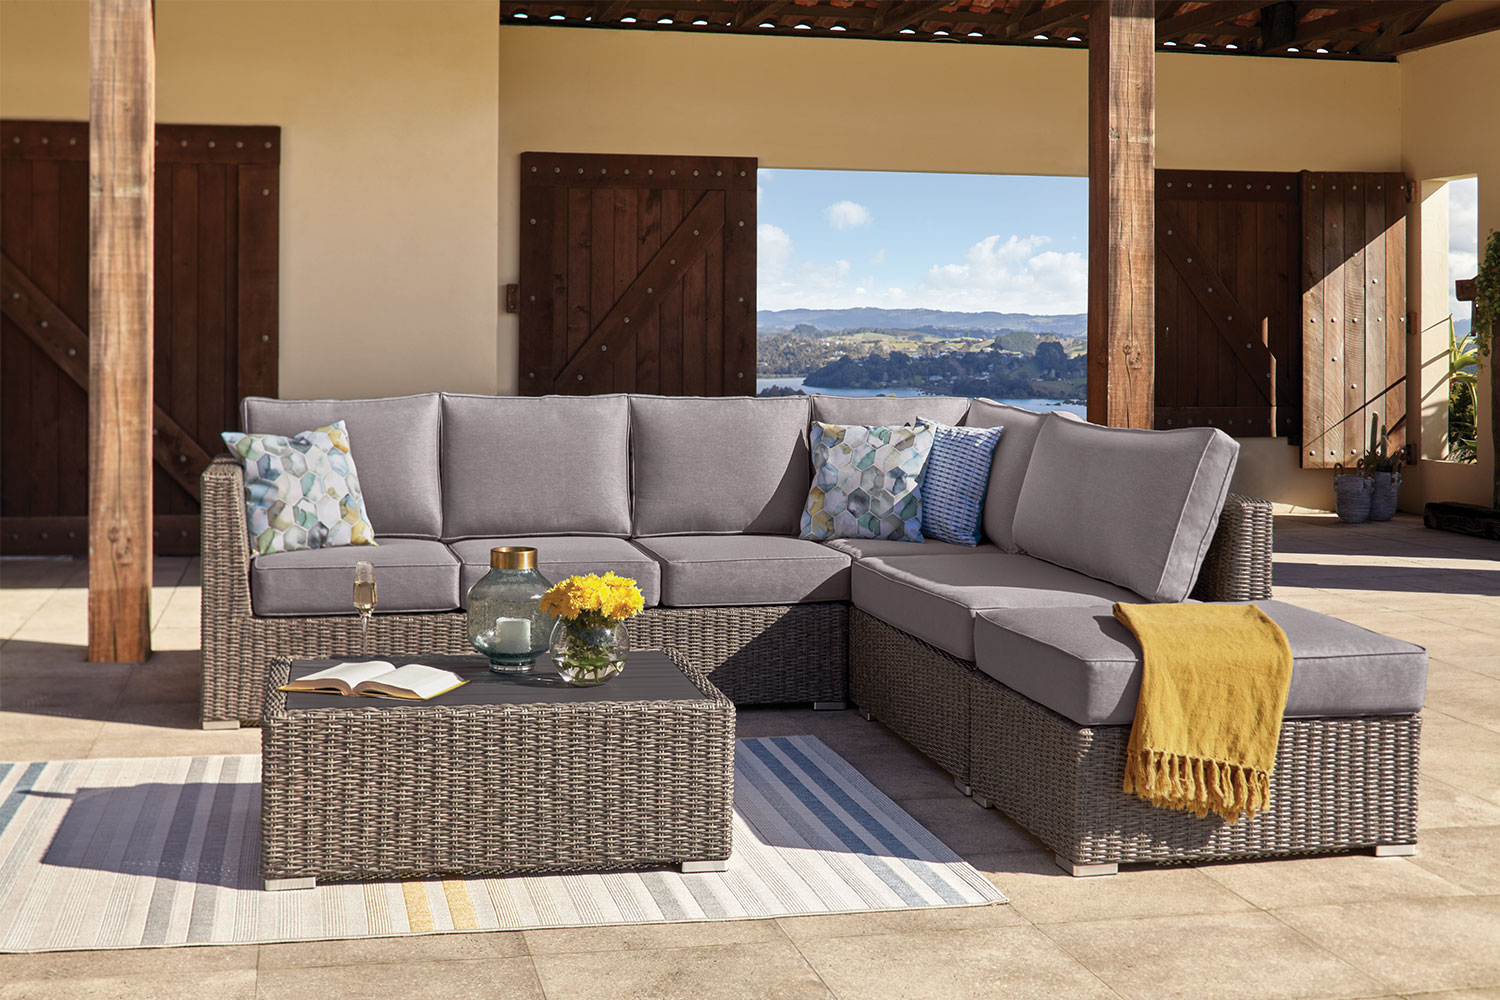 Outdoor Lounge Nz Mercedes Outdoor Corner Lounge Setting